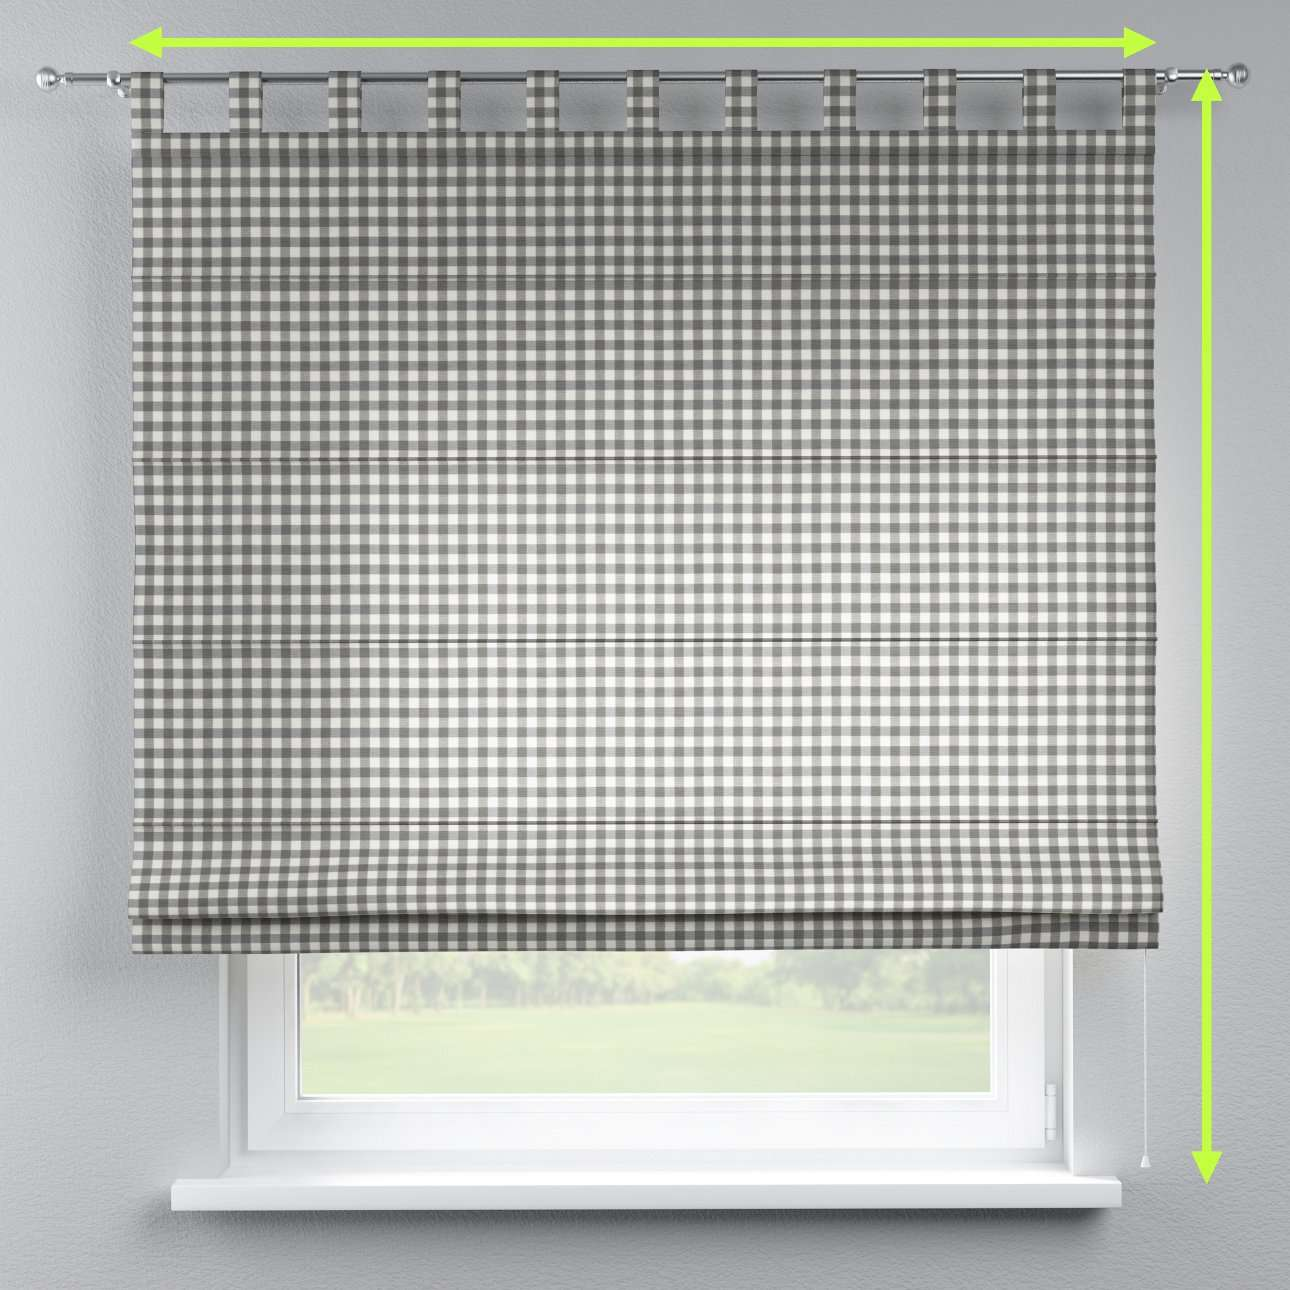 Verona tab top roman blind in collection Quadro, fabric: 136-11